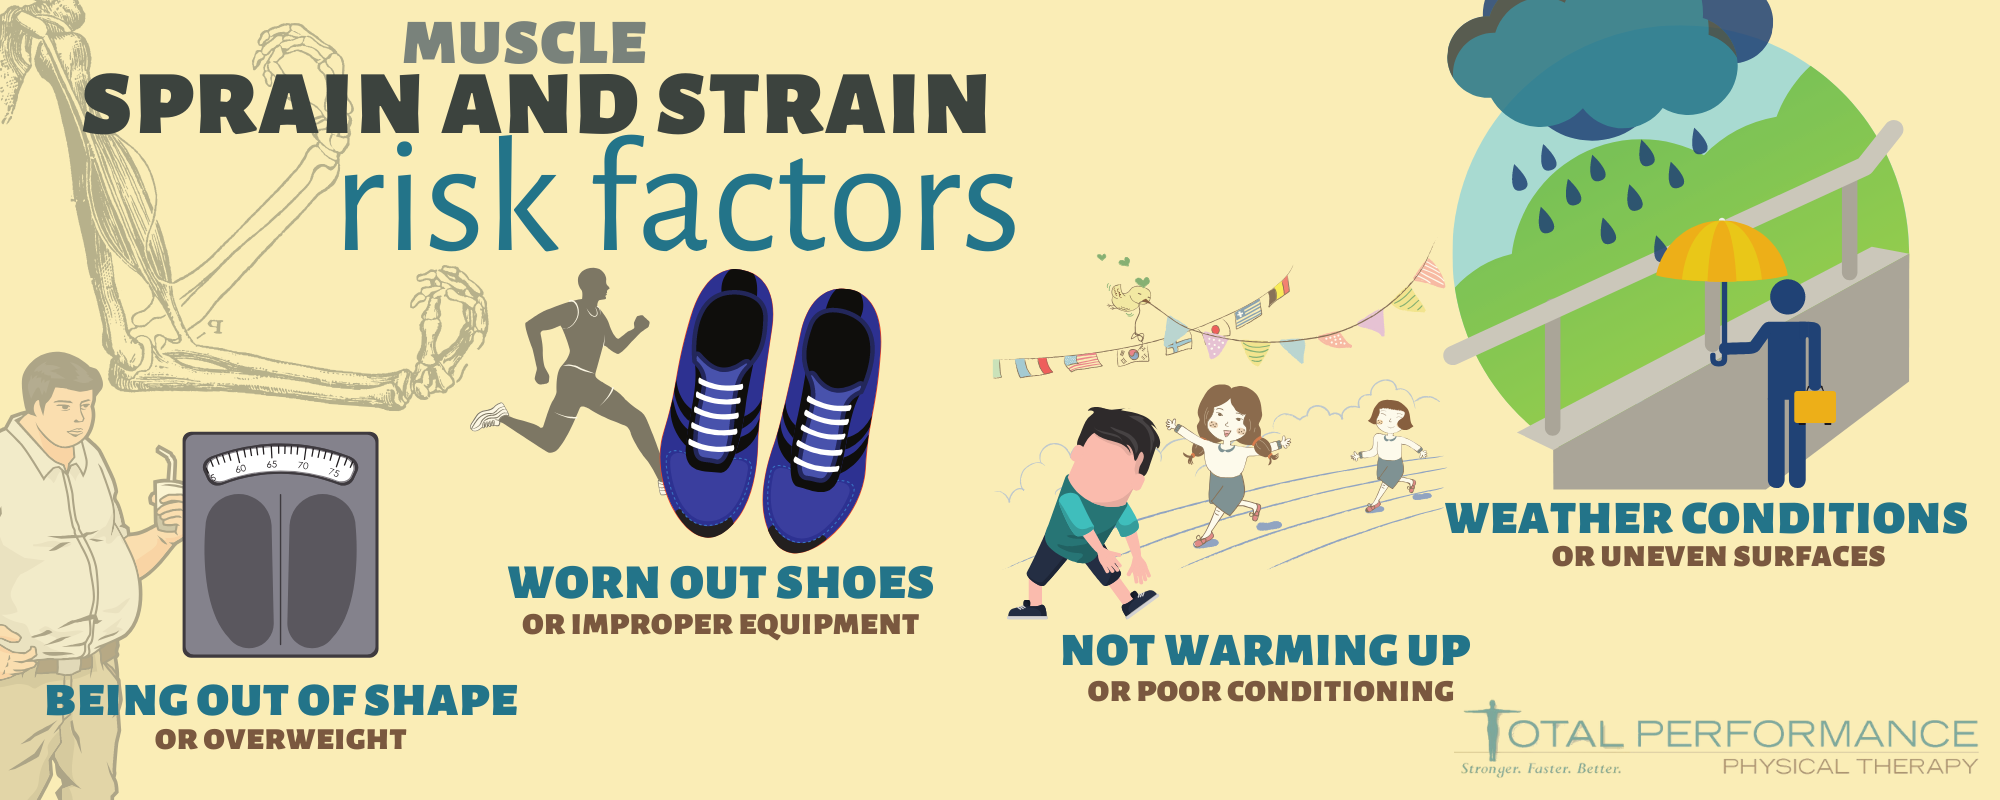 Infographic explaining risk factors for sprains and strains